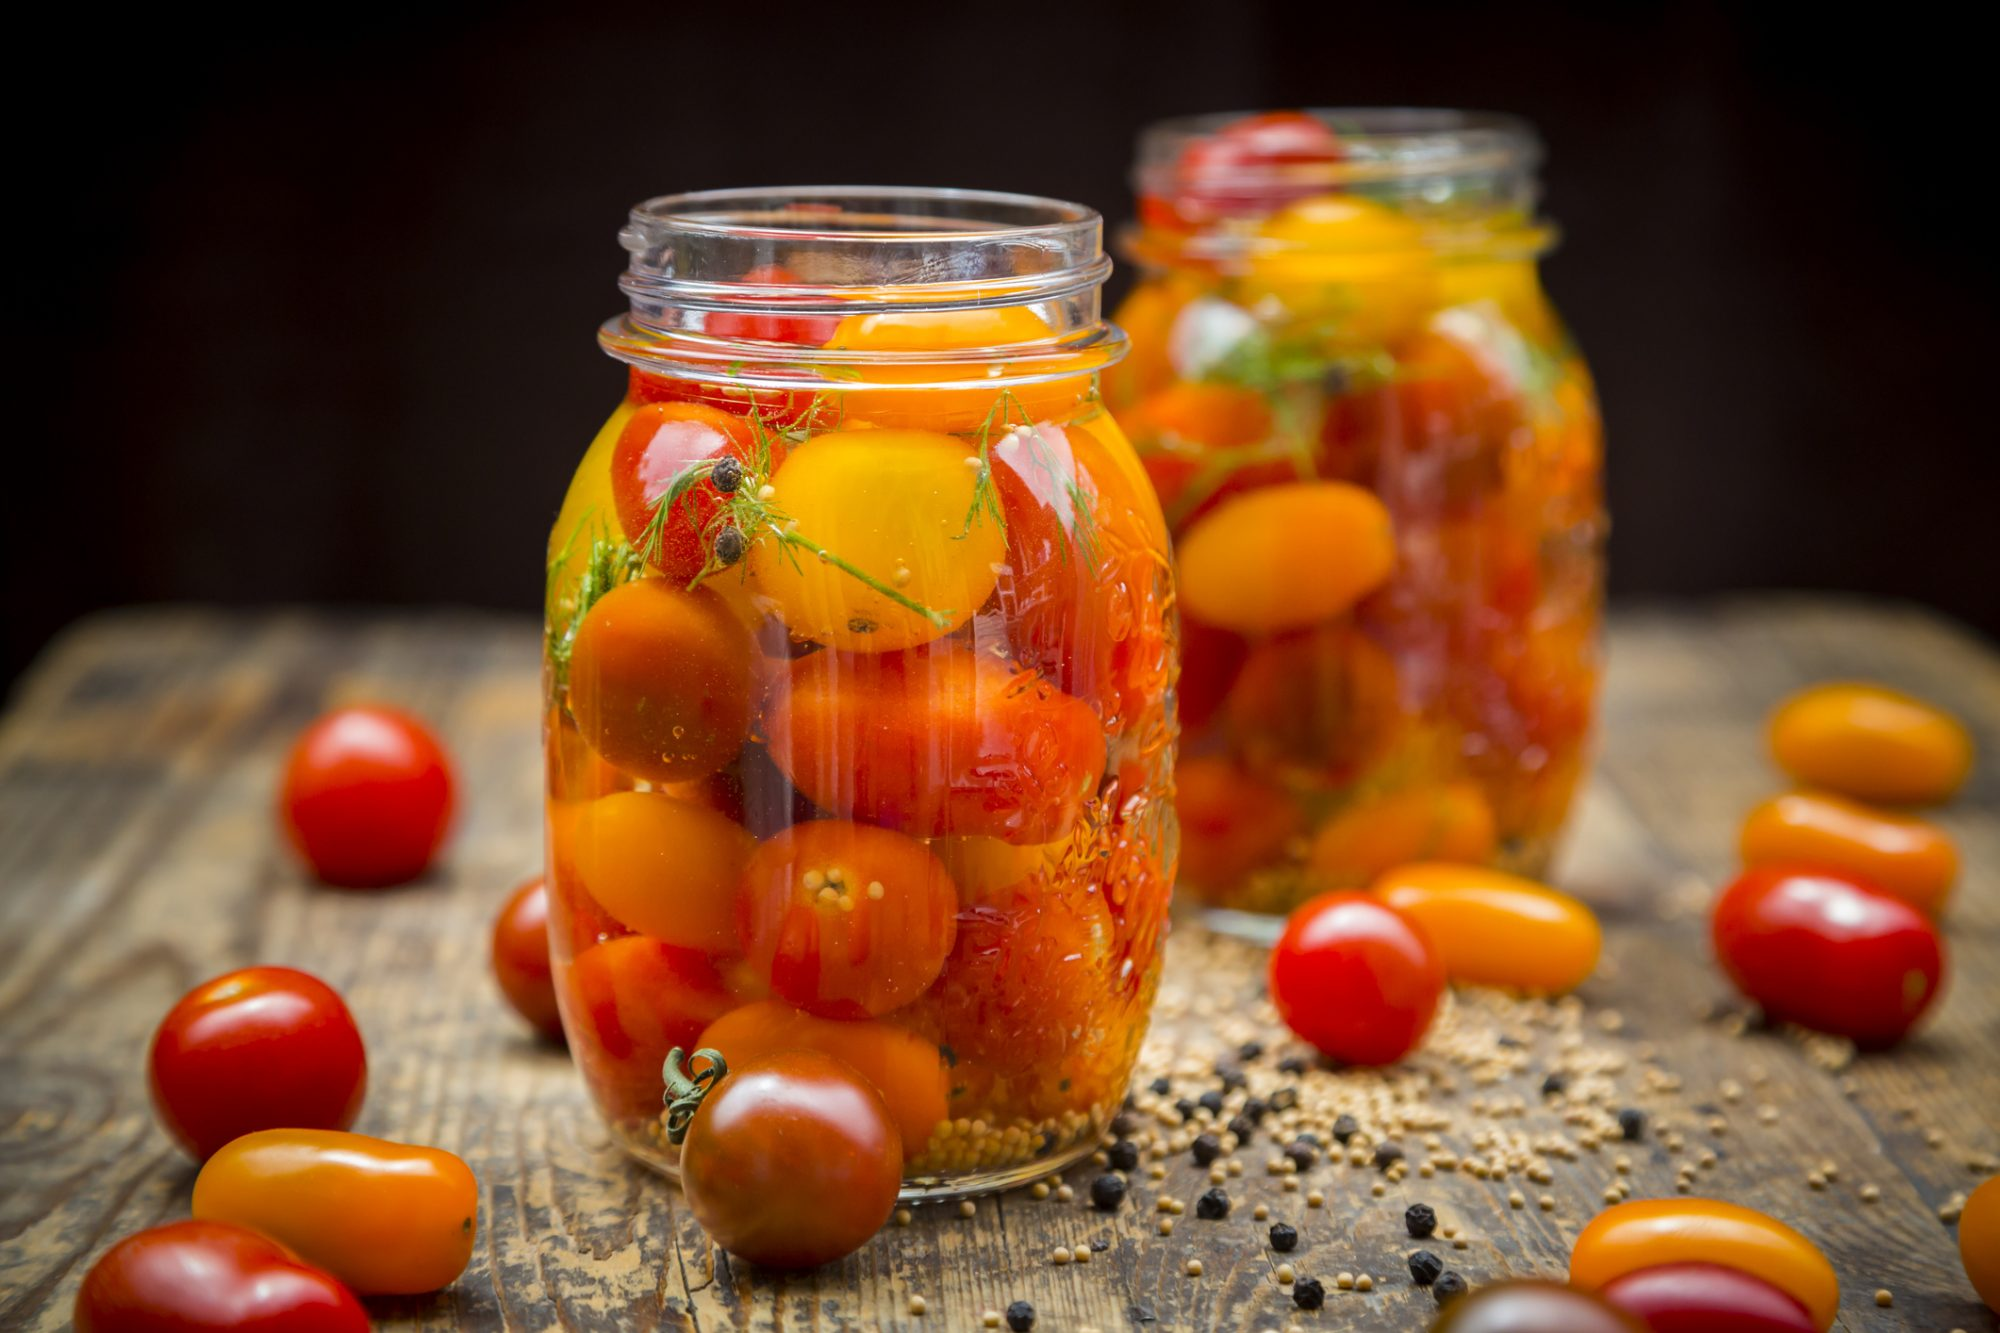 pickled tomatoes getty.jpg